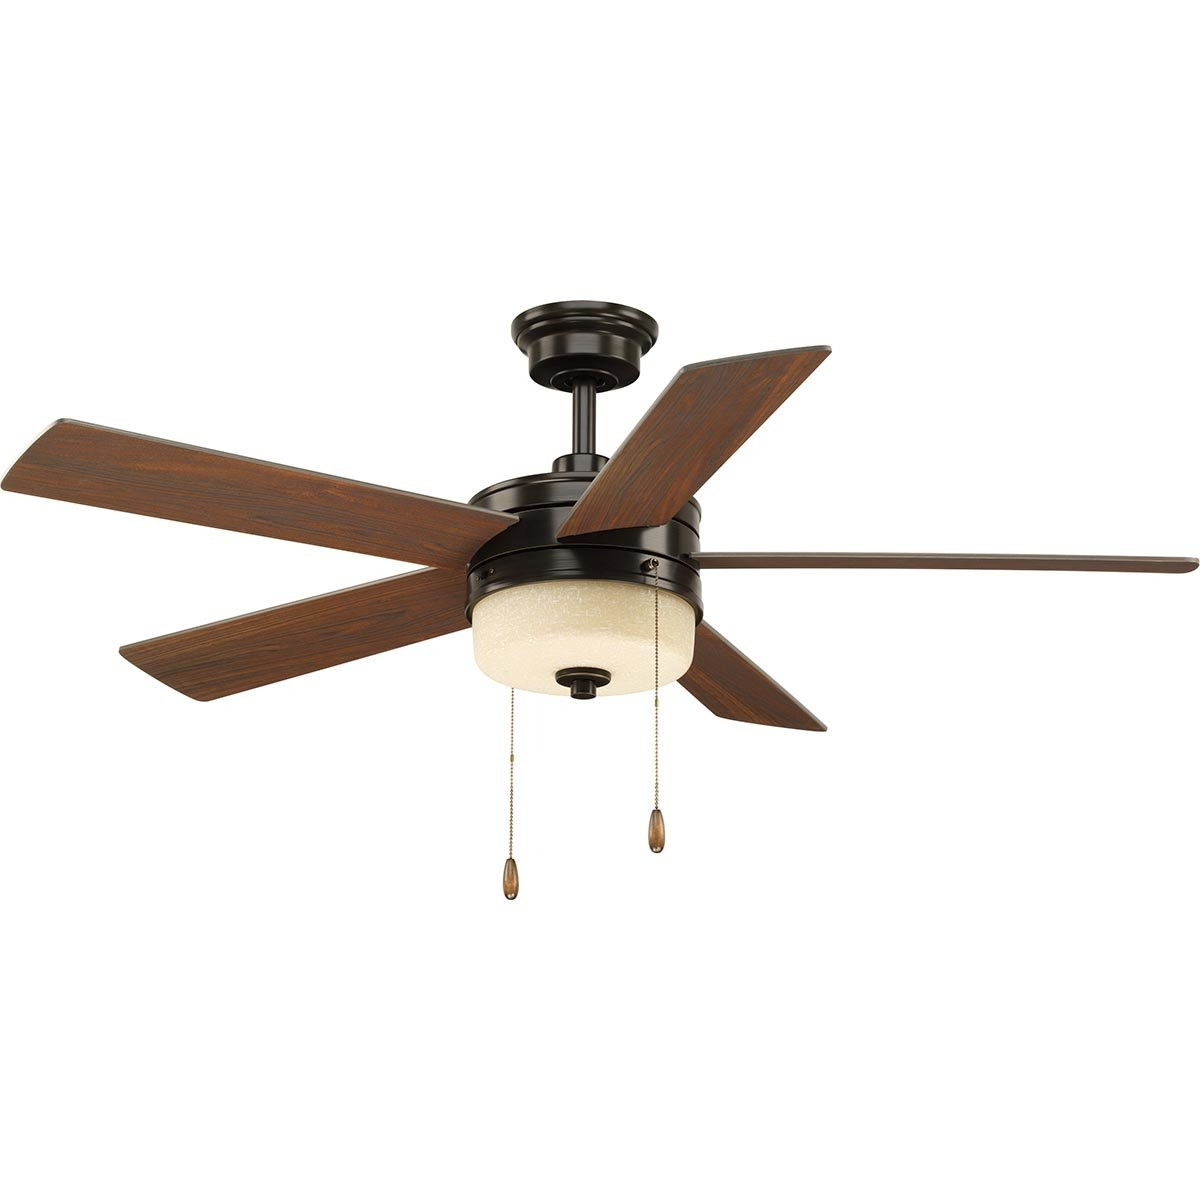 "Well Known 54"" Van Nest 5 Blade Led Ceiling Fan, Light Kit Included For Sheyla 5 Blade Led Ceiling Fans (View 12 of 20)"